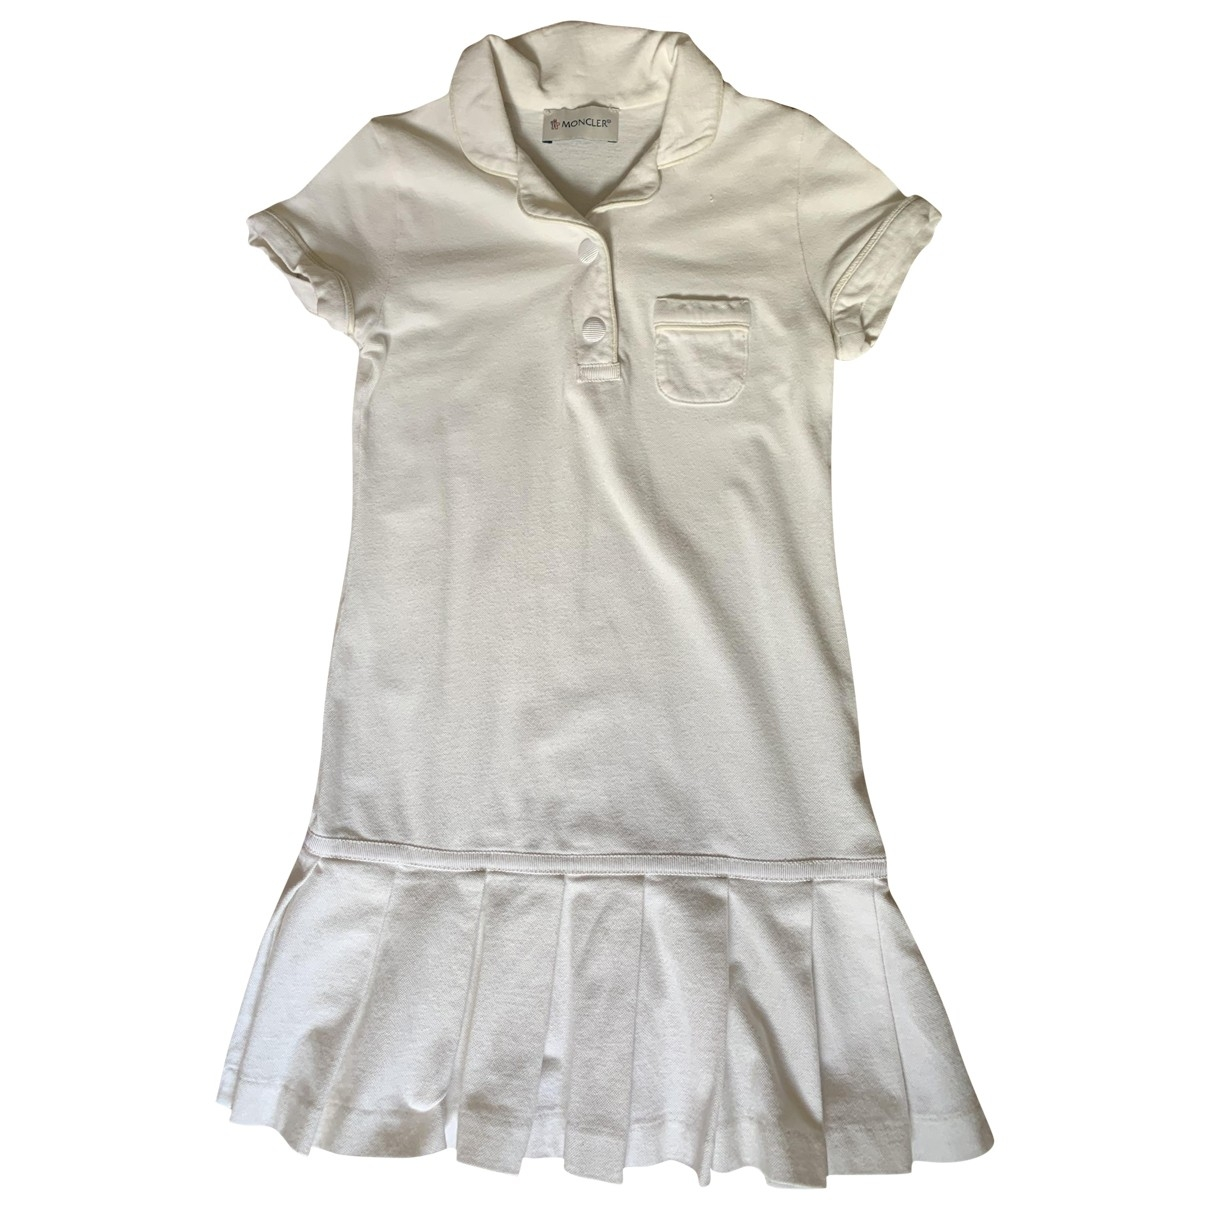 Moncler \N White Cotton - elasthane dress for Kids 6 years - up to 114cm FR